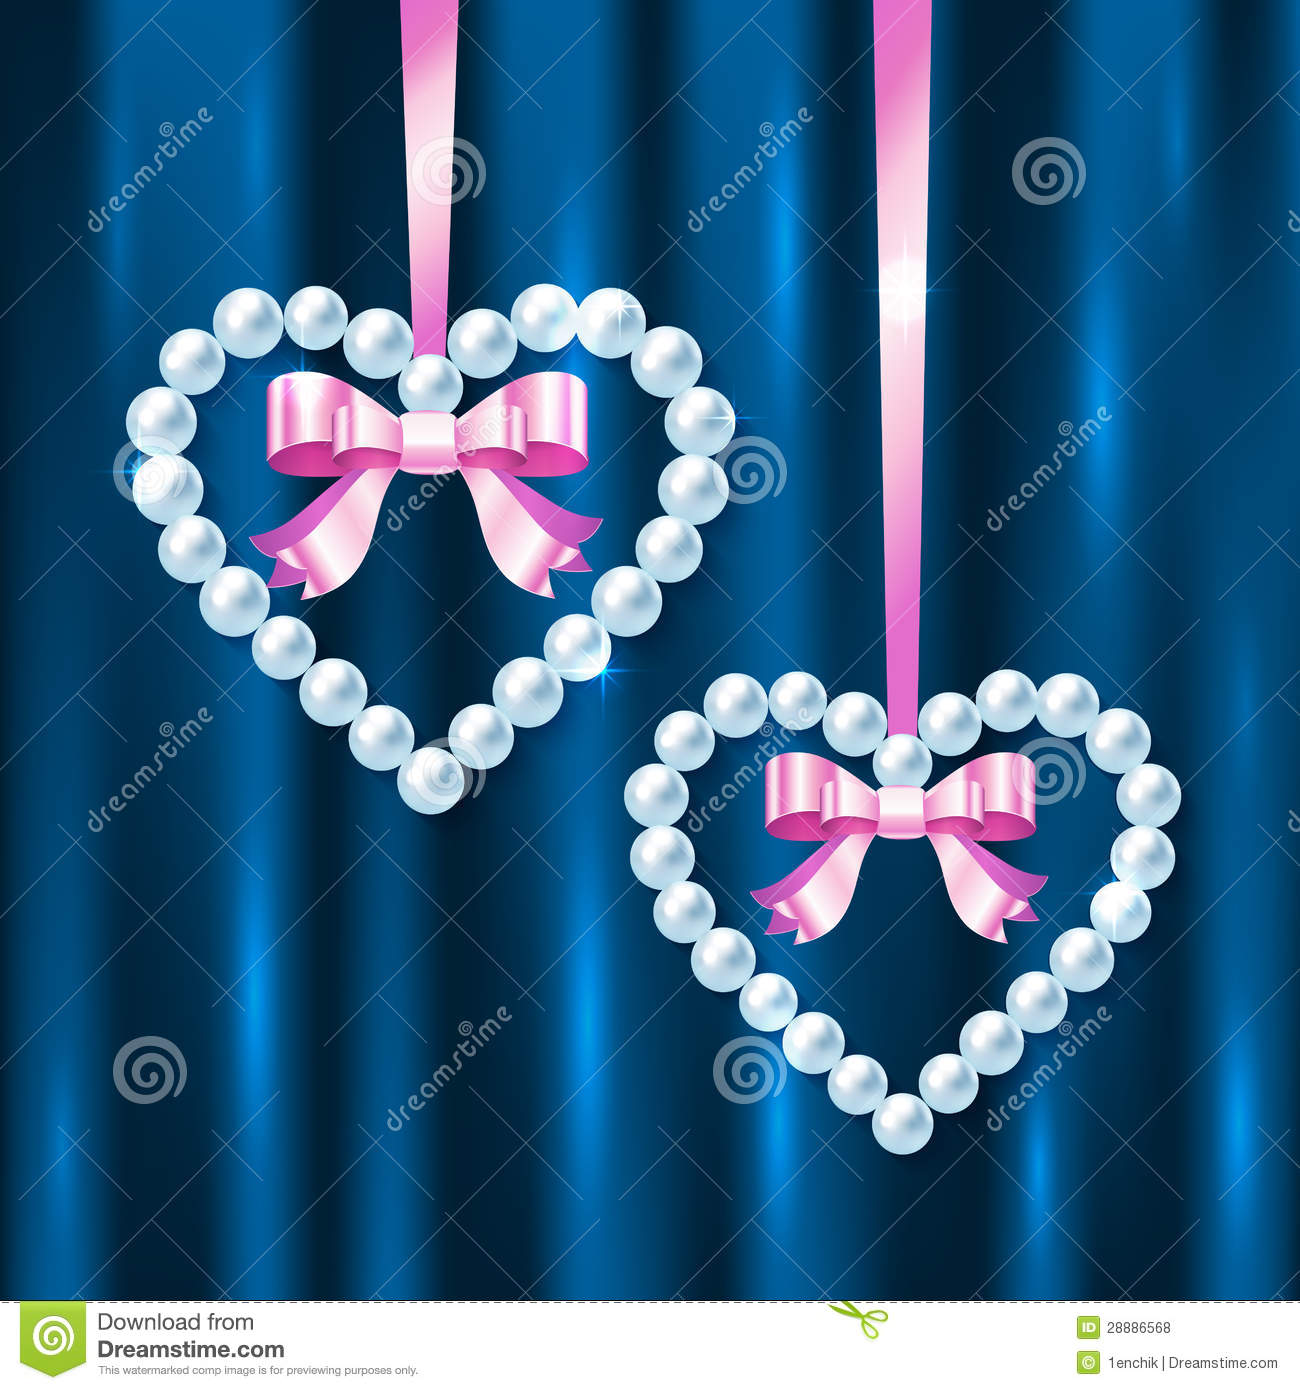 It is a photo of Witty Hearts With Bows